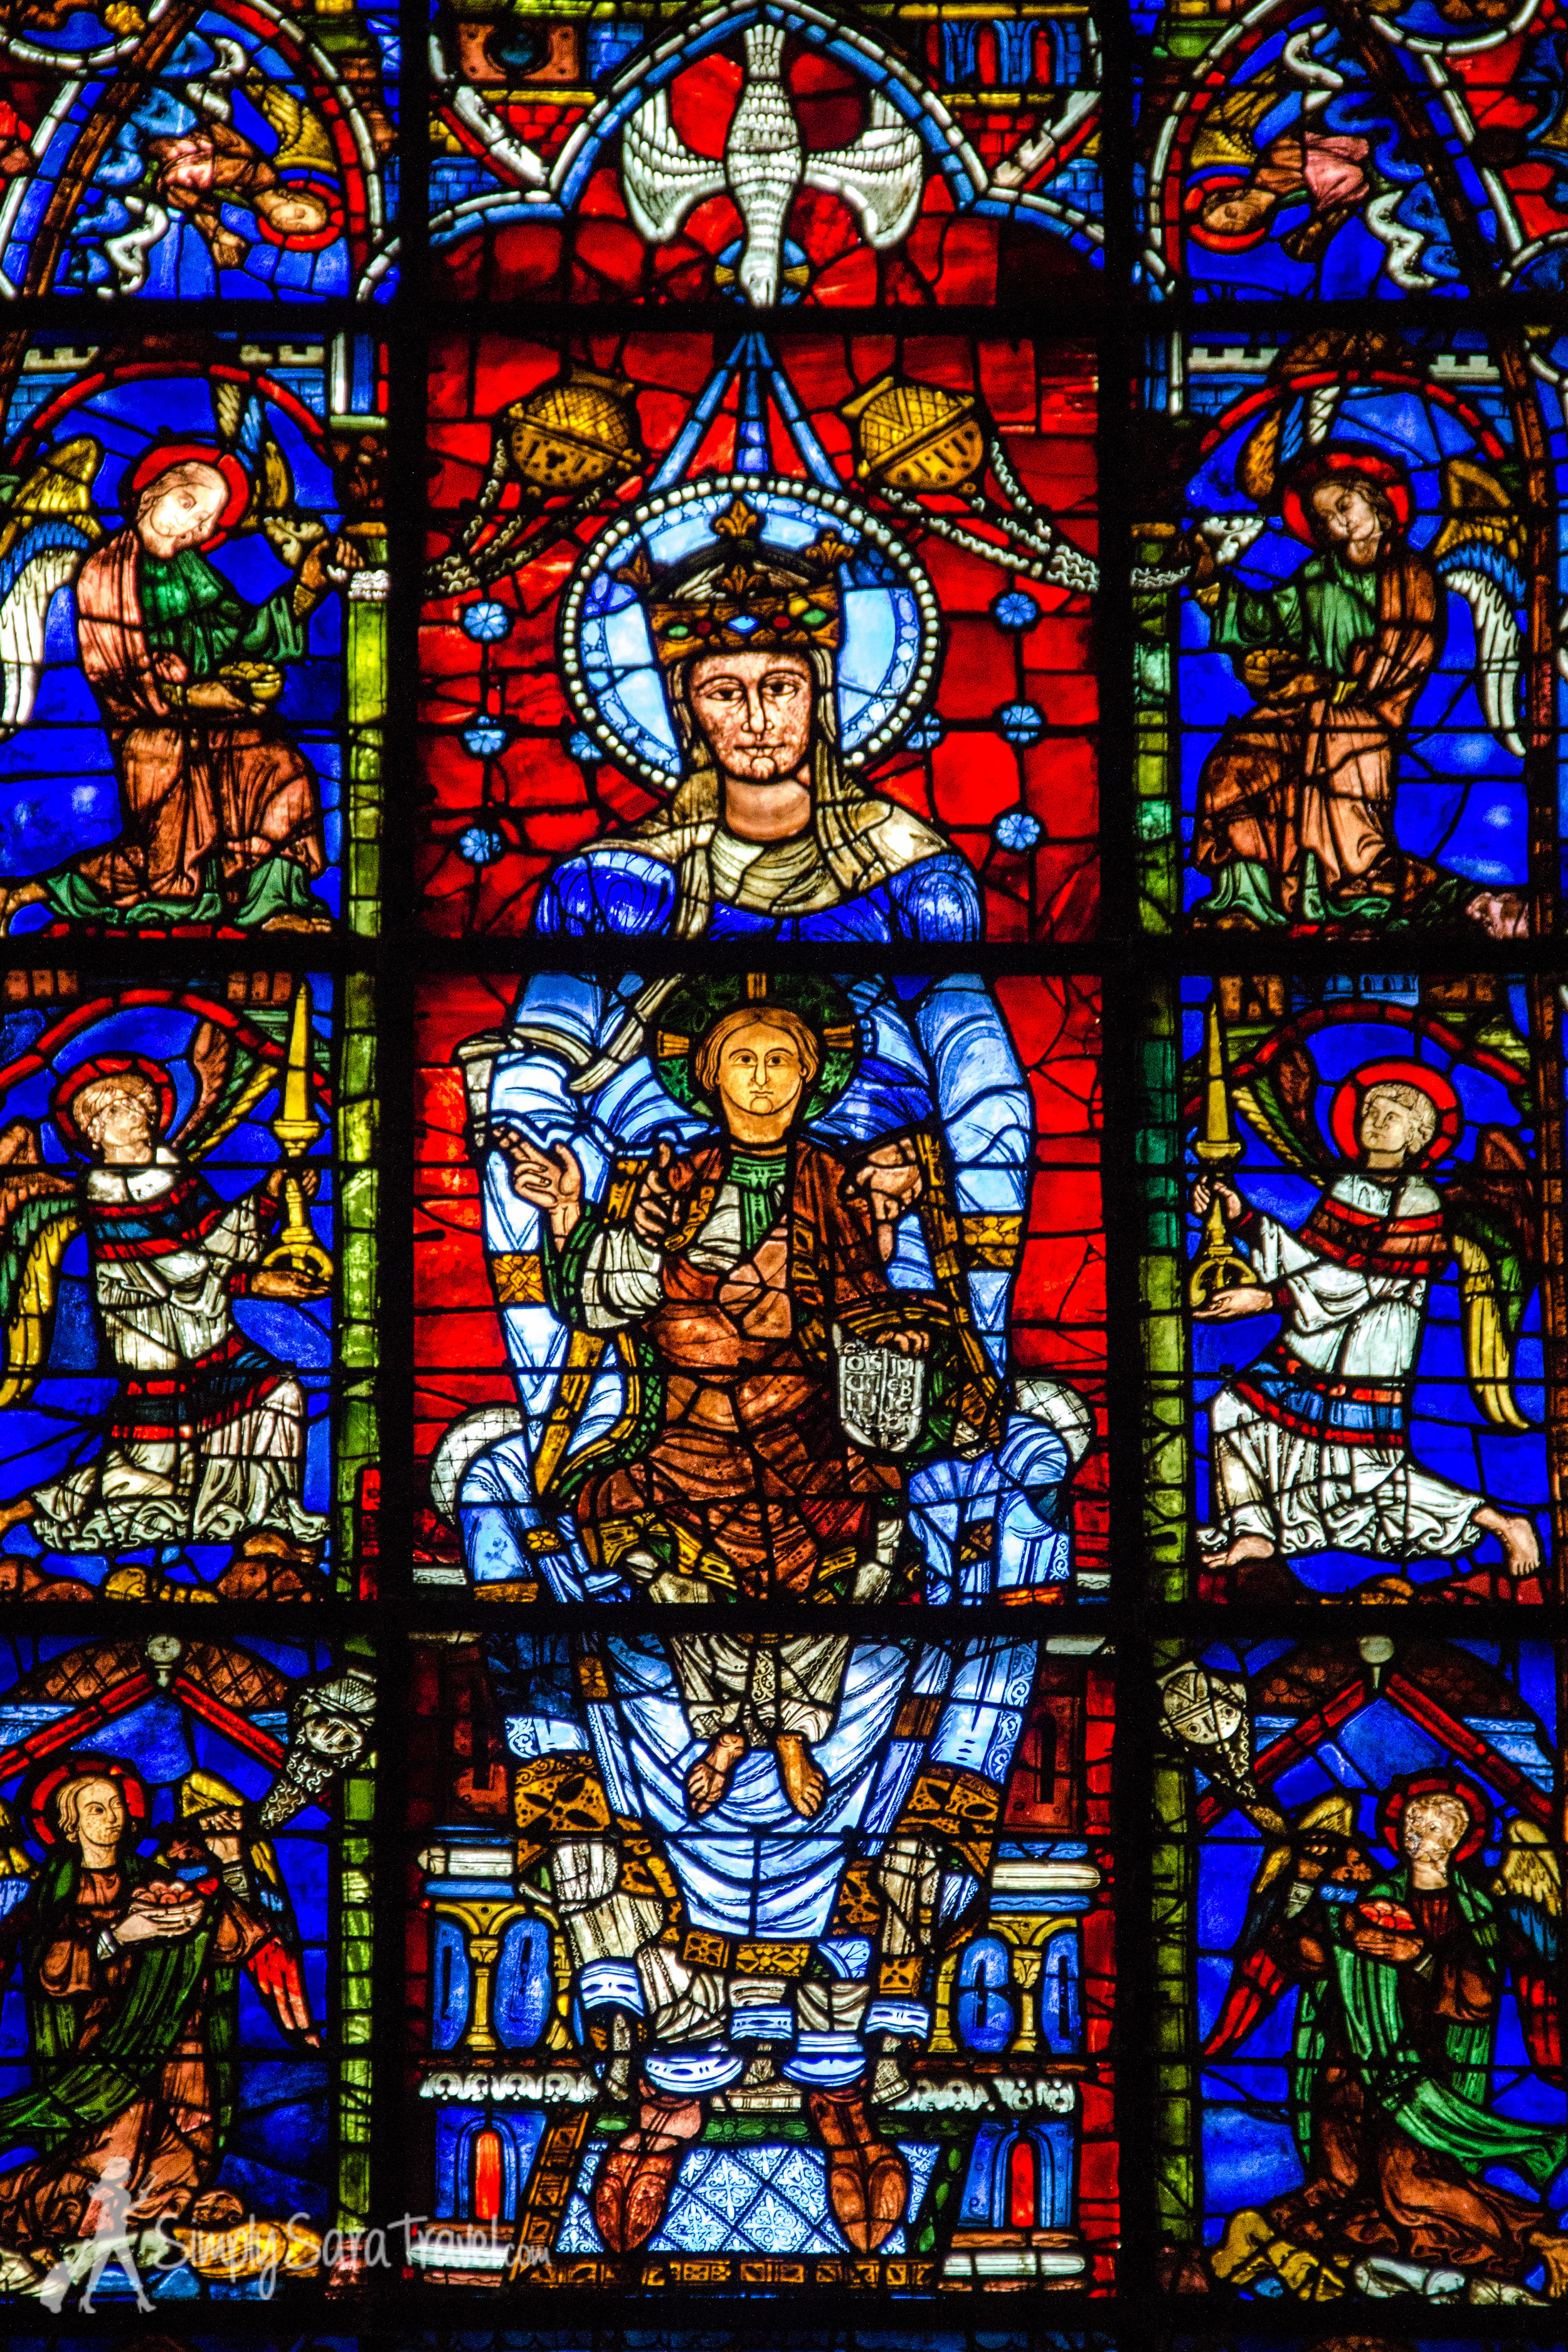 The Blue Virgin Window  (Notre Dame de laBelle Verrière) is famous. It is another of the oldest windows in the Chartres Cathedral - it also dates back from the mid-12th century. It was the central window behind the alter of the church, and survived the fire. It was salvaged and reinserted into a new frame in the 13th century when the new (present) Cathedral was built.